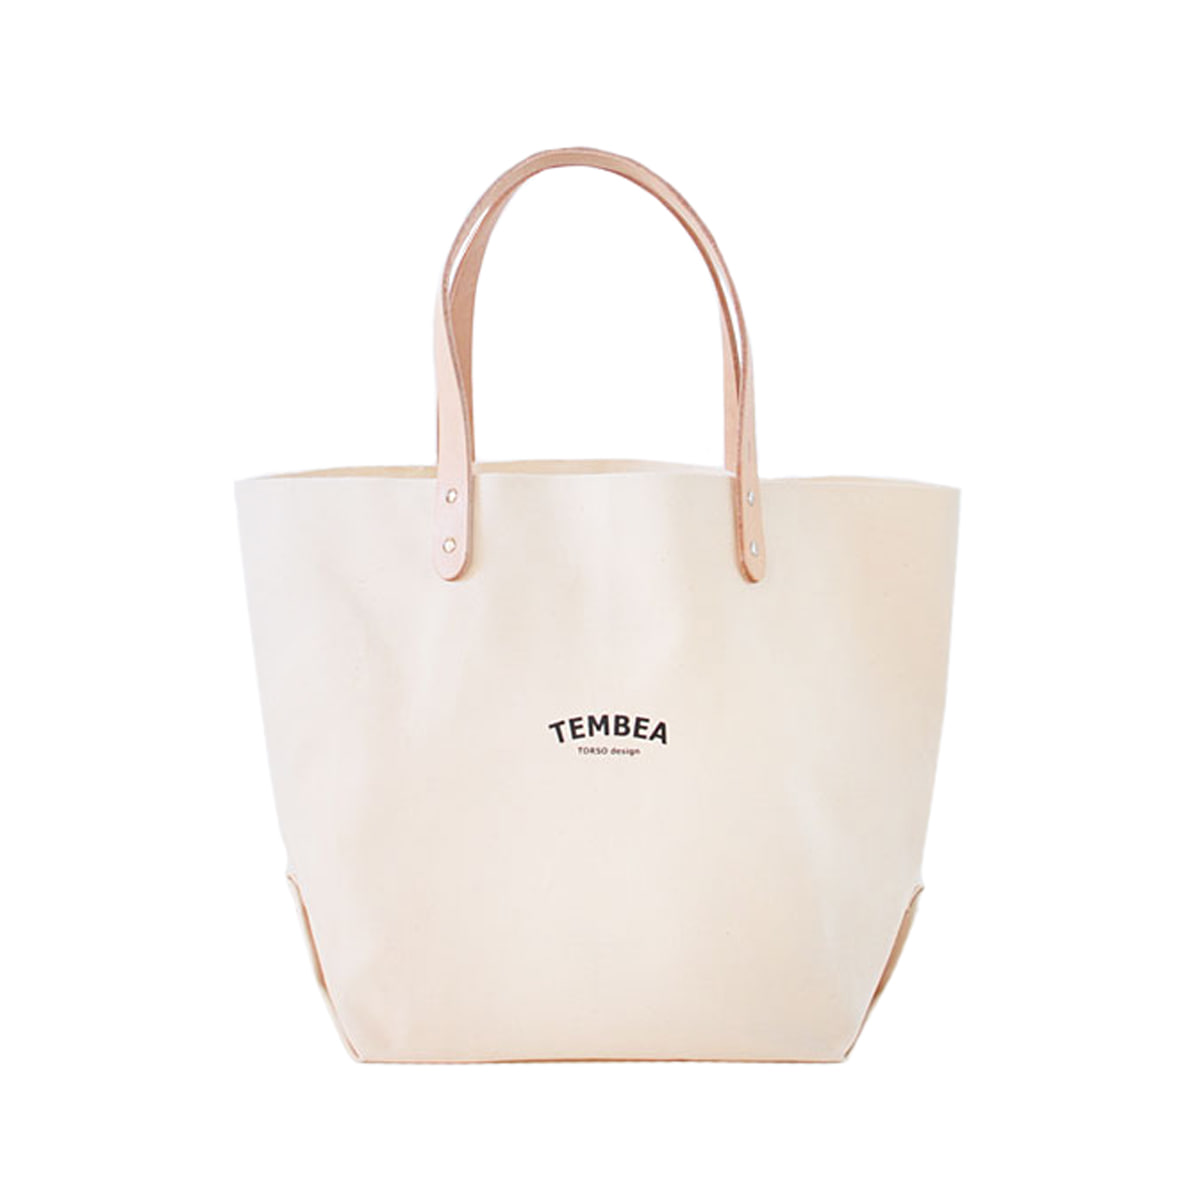 [TEMBEA] DELIVERY TOTE LARGE 'NATURAL'